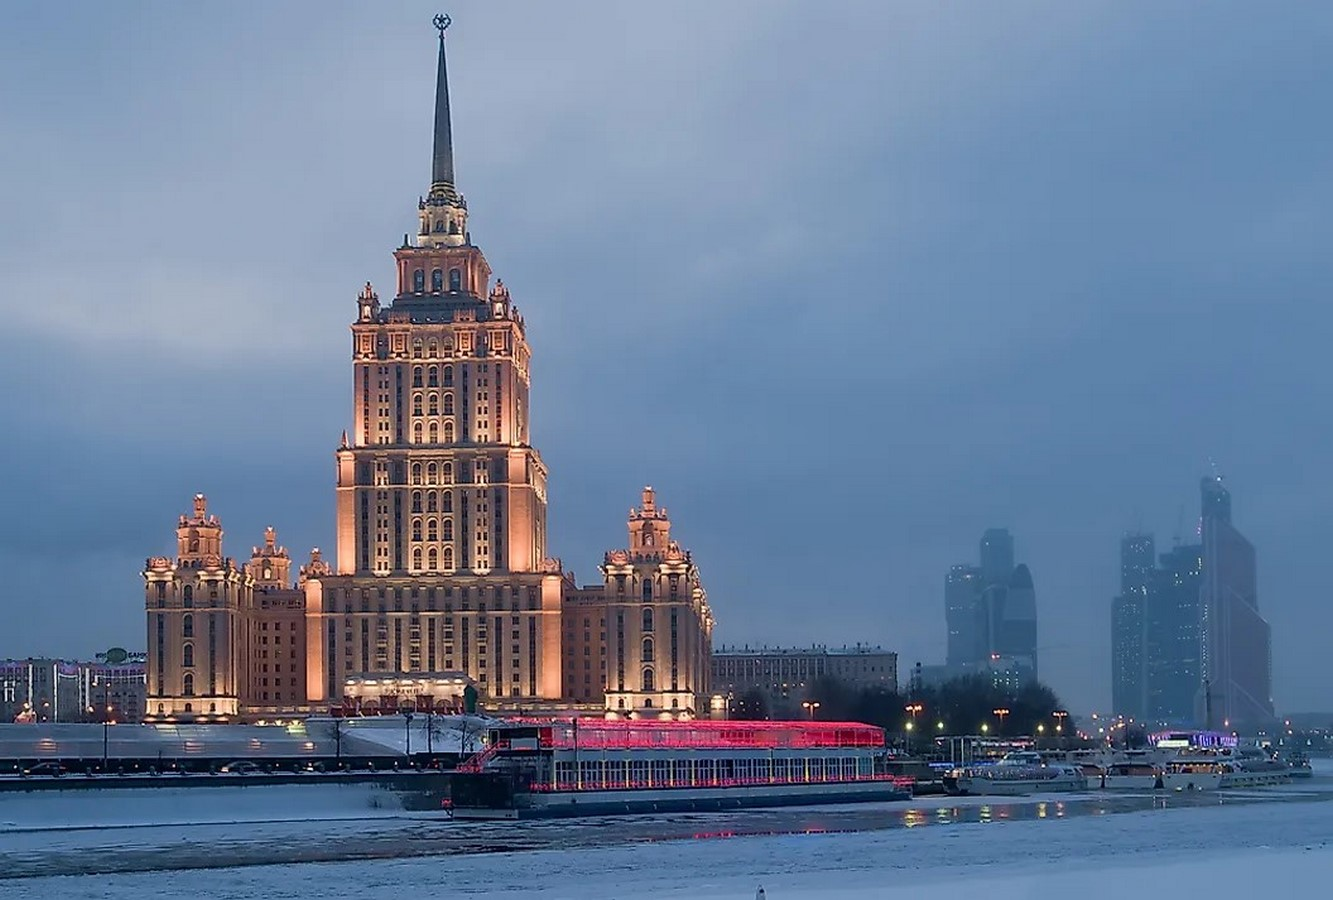 10 Things you did not know about the Stalinist architecture - Sheet1